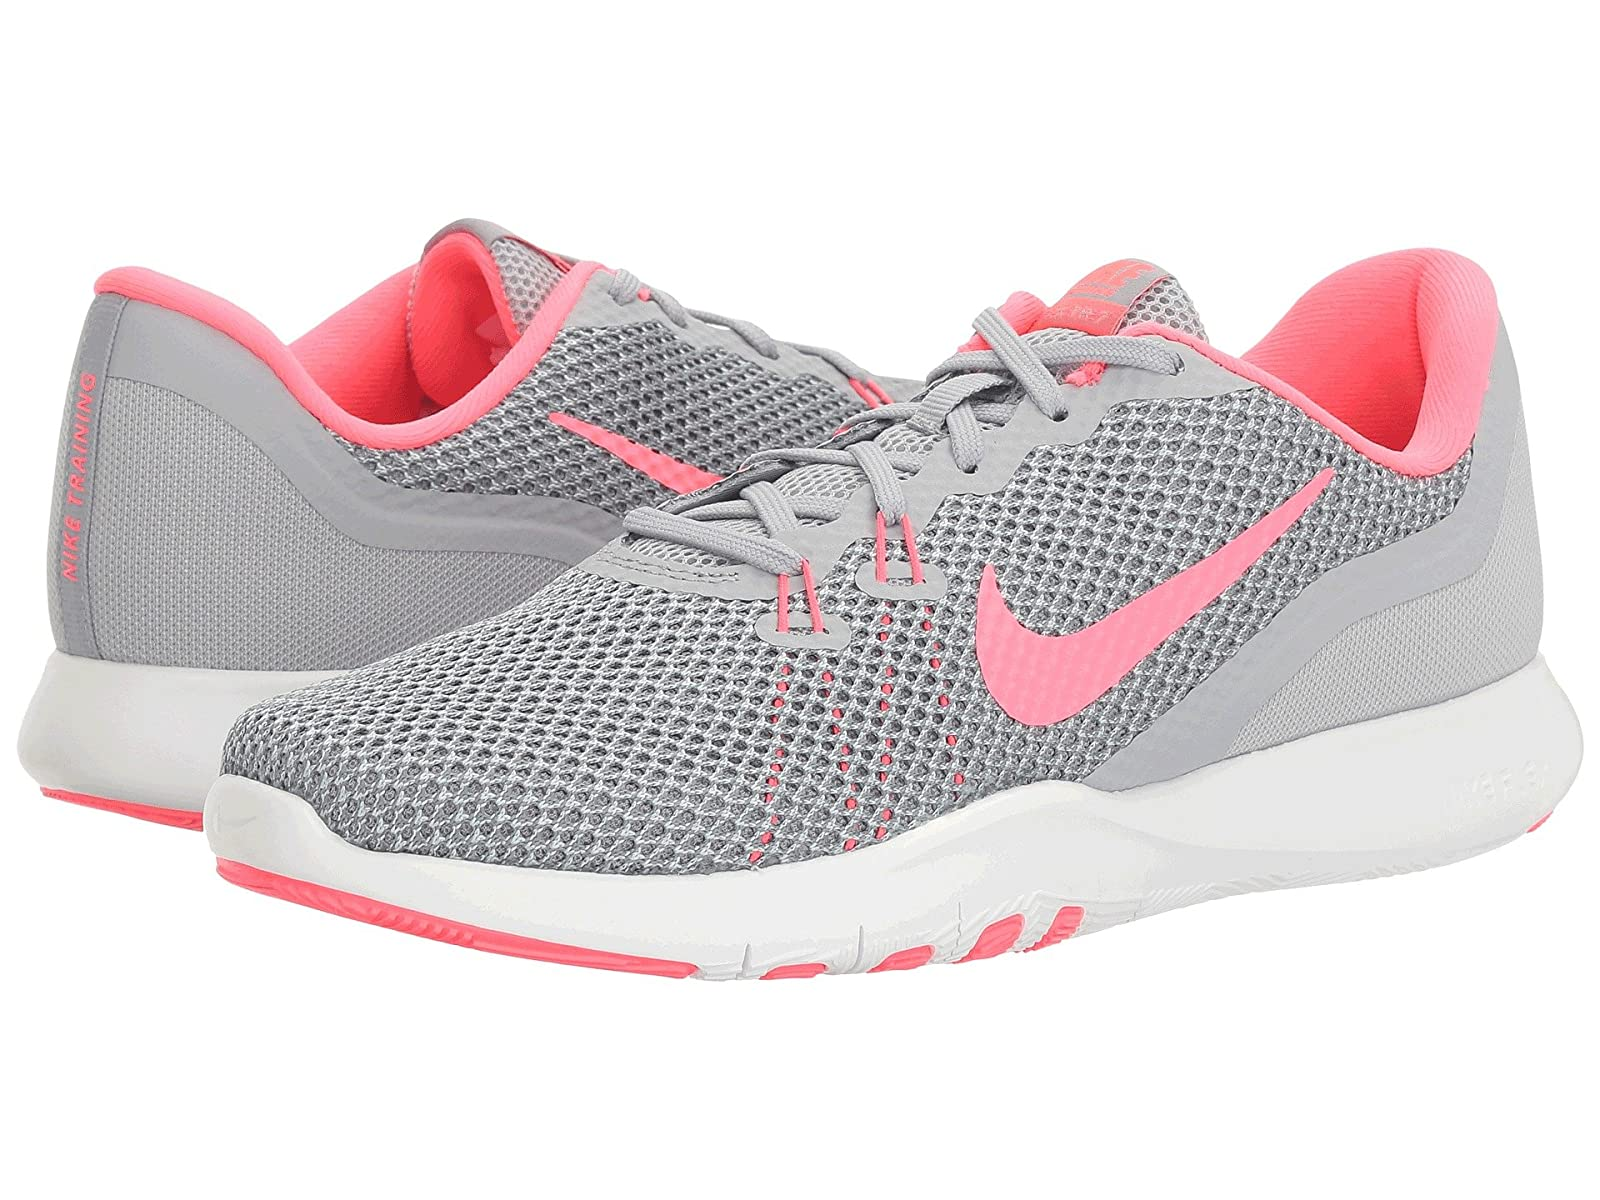 Nike Flex TR 7Cheap and distinctive eye-catching shoes